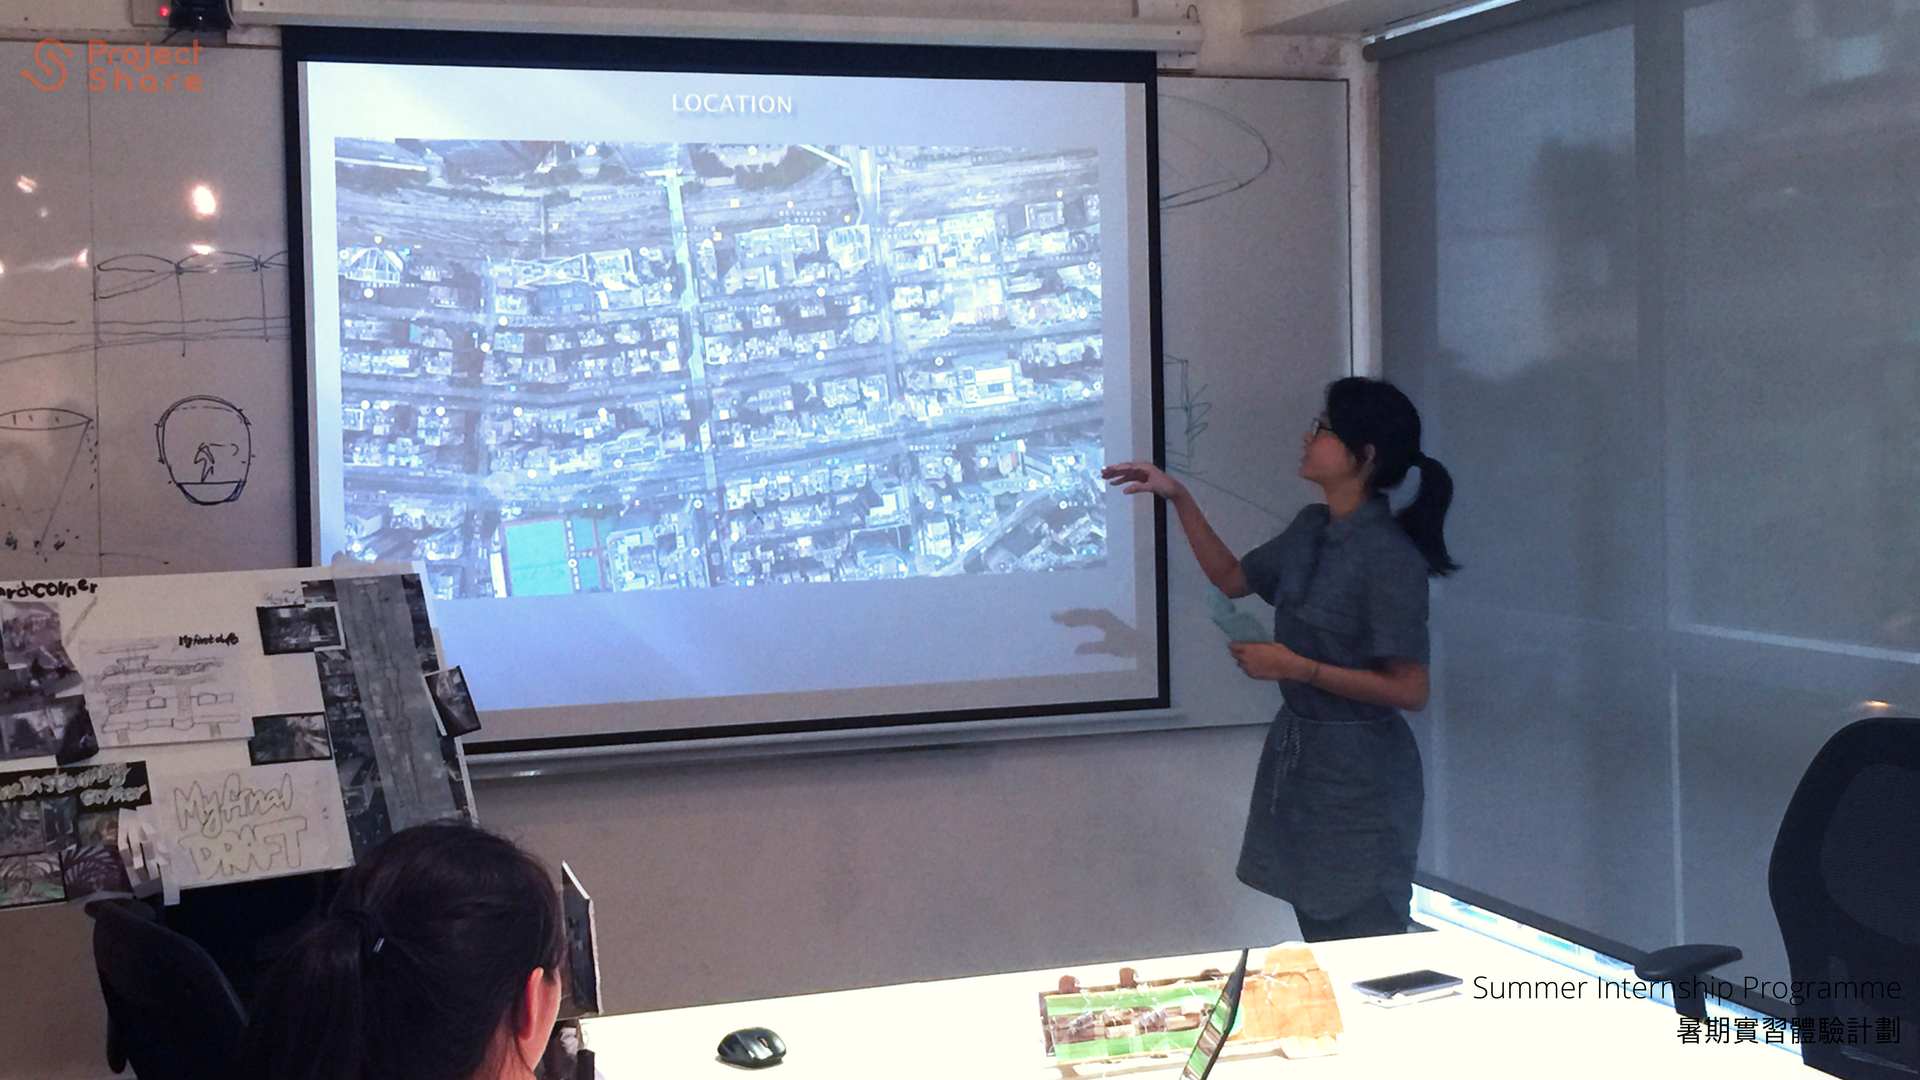 Participant at 10 Design shares what she learned with her colleagues in a presentation.